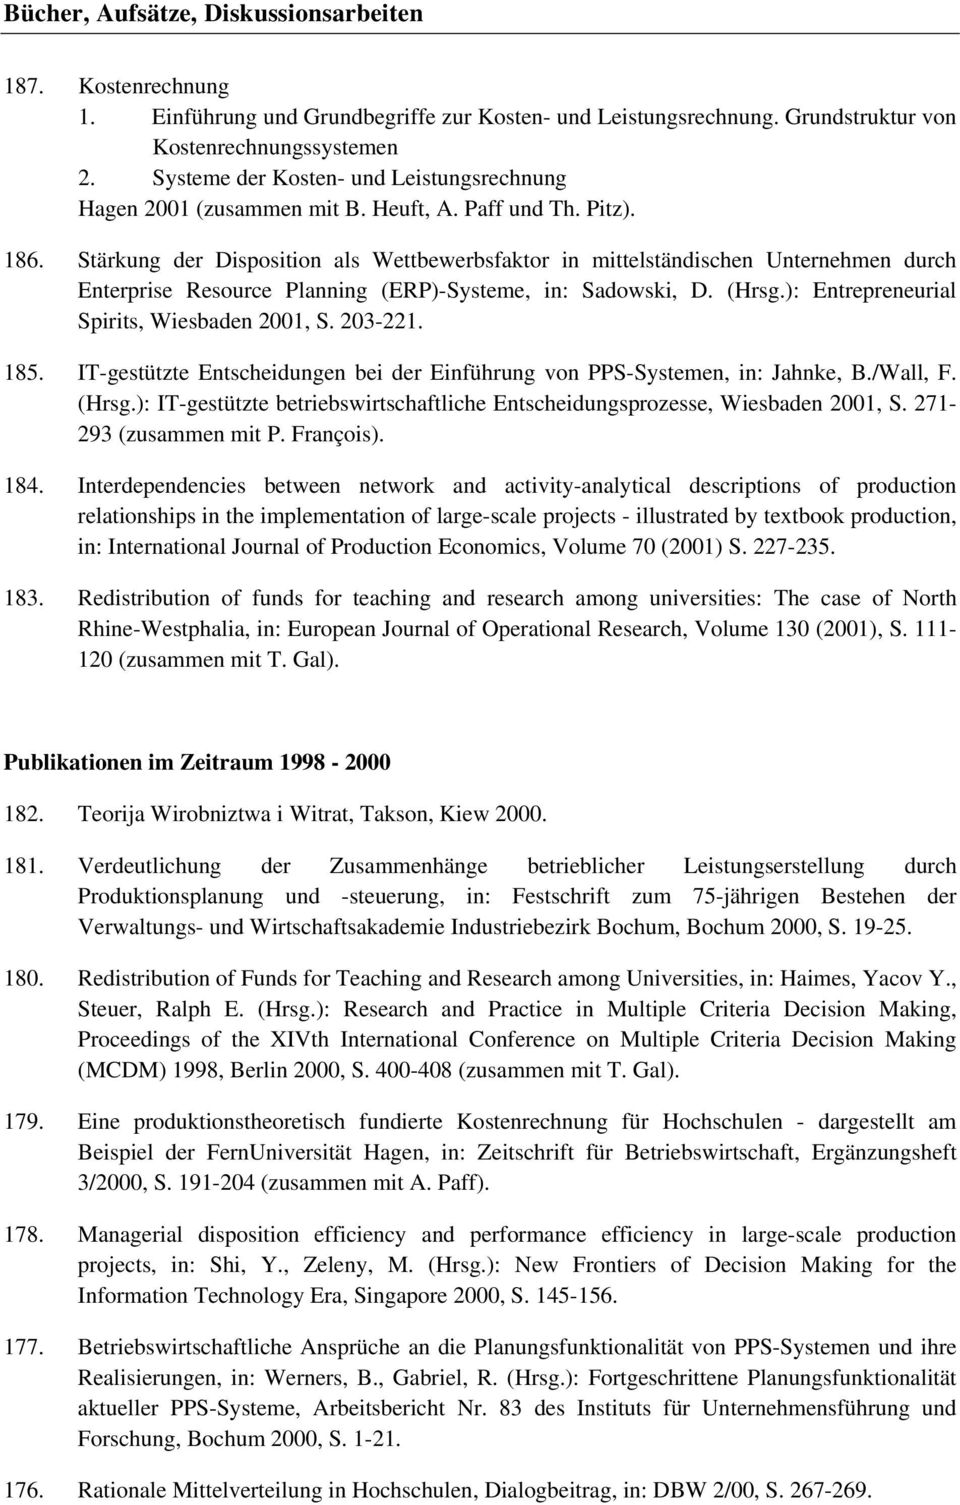 Stärkung der Disposition als Wettbewerbsfaktor in mittelständischen Unternehmen durch Enterprise Resource Planning (ERP)-Systeme, in: Sadowski, D. (Hrsg.): Entrepreneurial Spirits, Wiesbaden 2001, S.